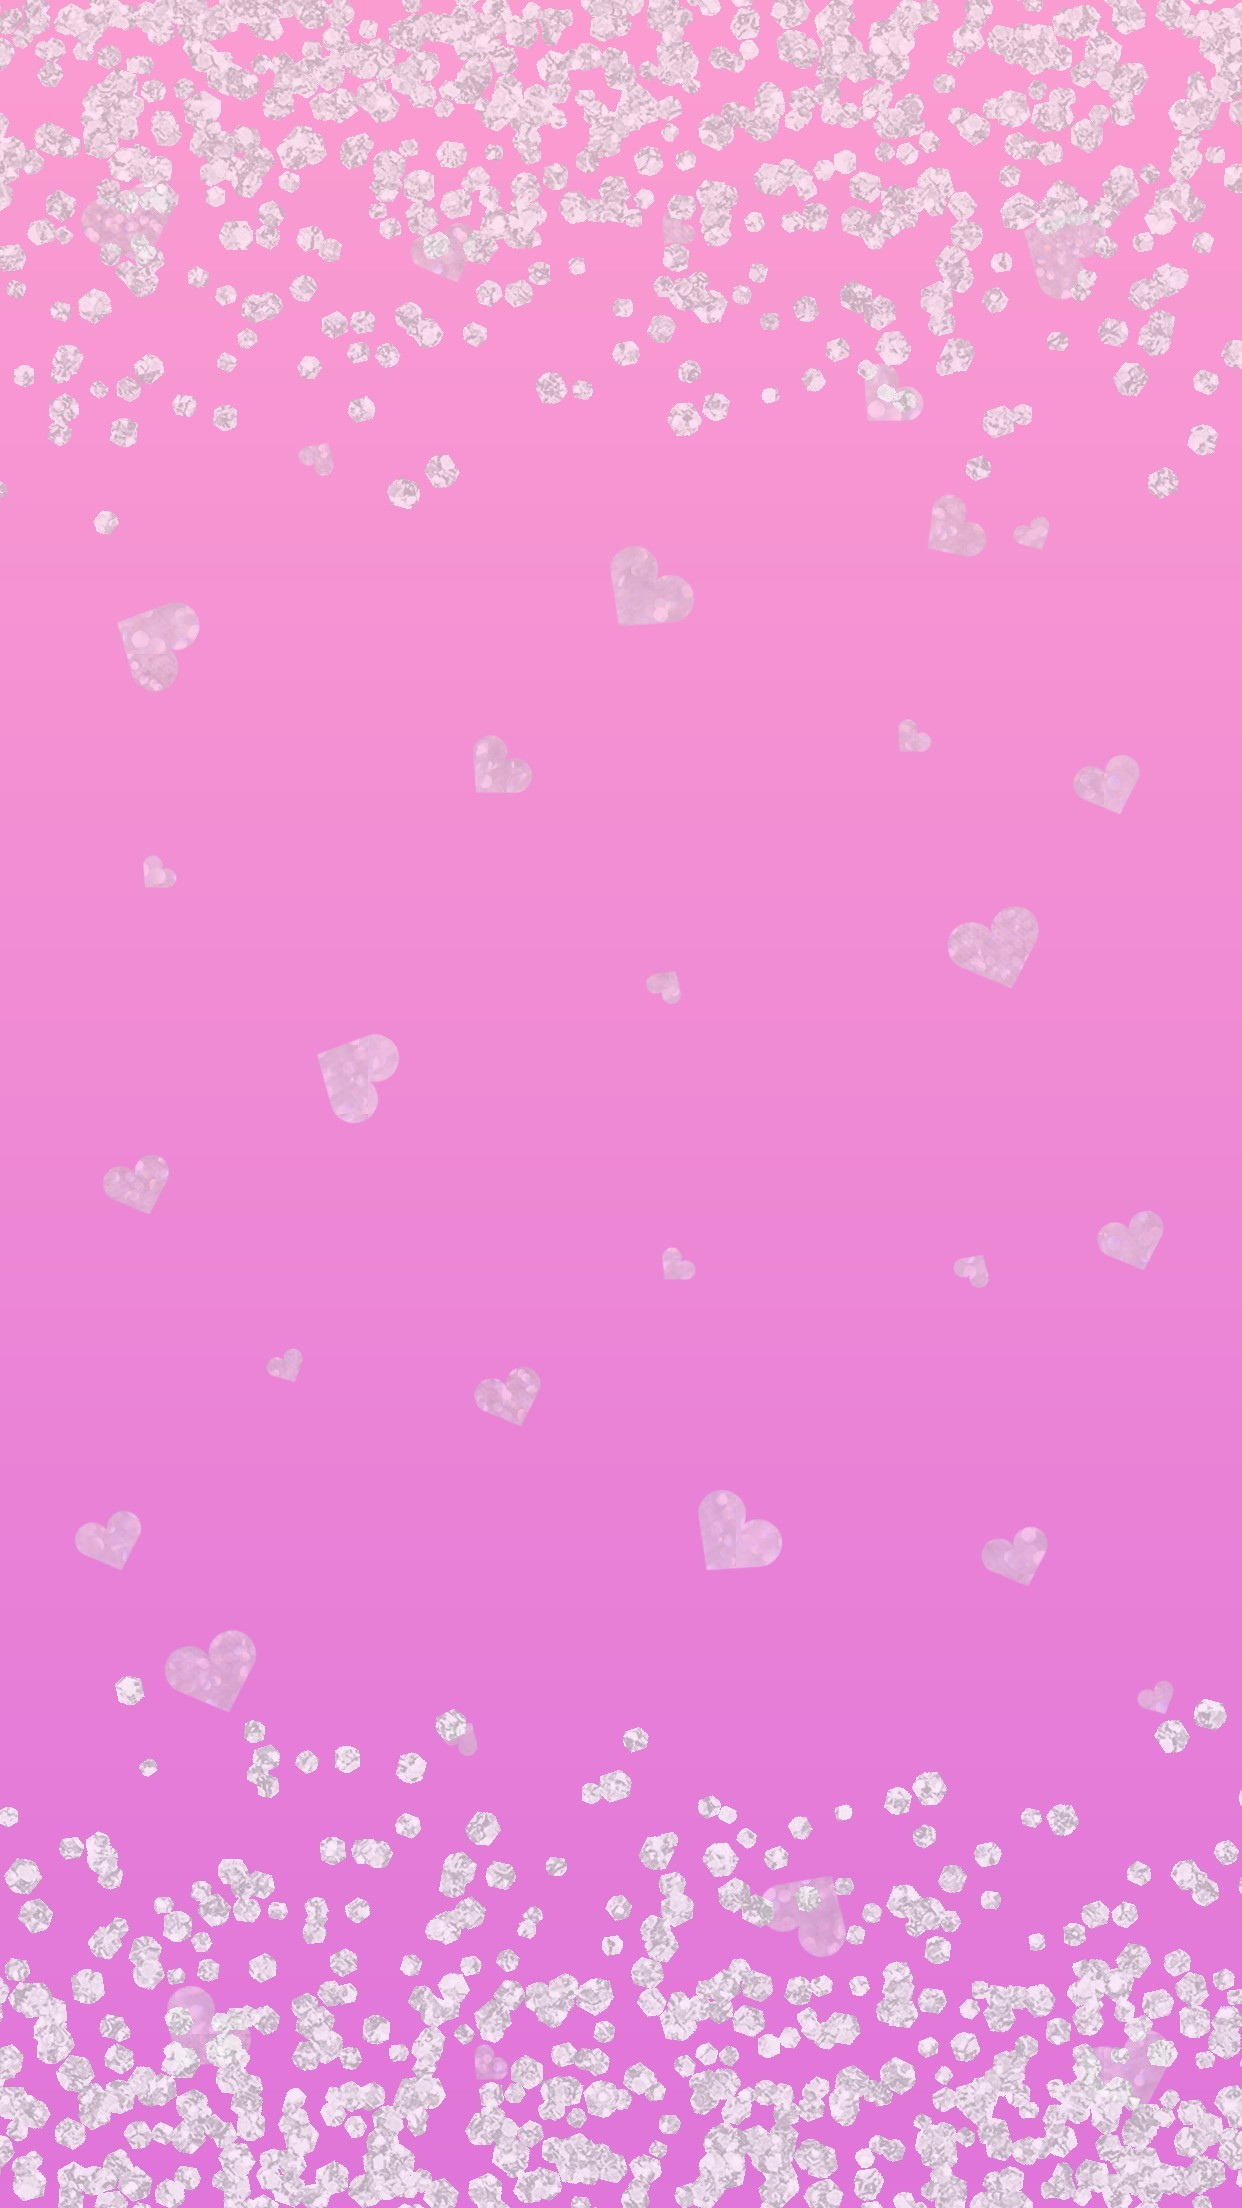 Cute Hello Kitty Wallpaper Android Cute Heart Background 183 ① Wallpapertag